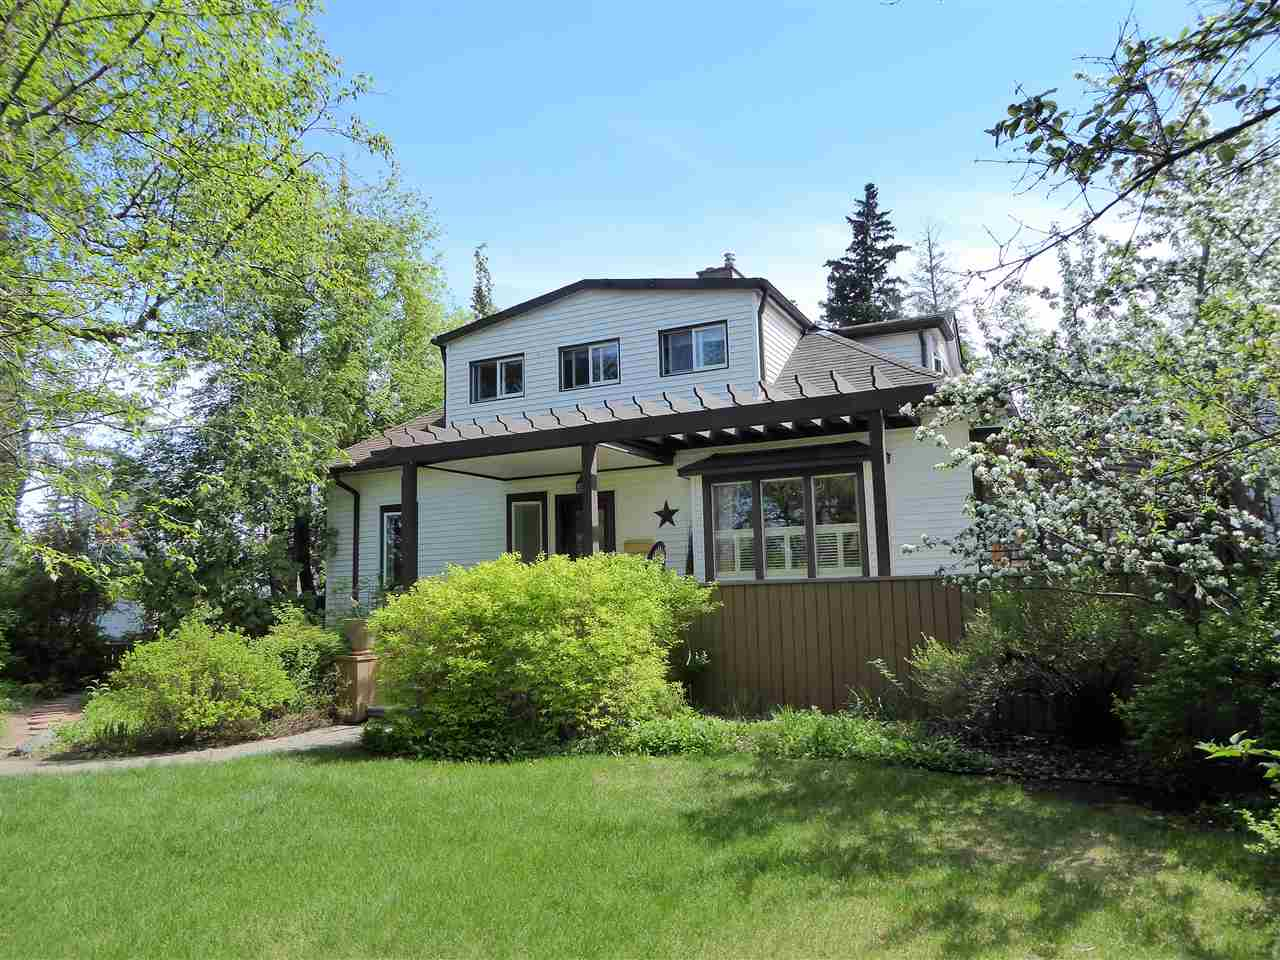 Main Photo: 7441 SASKATCHEWAN Drive in Edmonton: Zone 15 House for sale : MLS(r) # E4057938